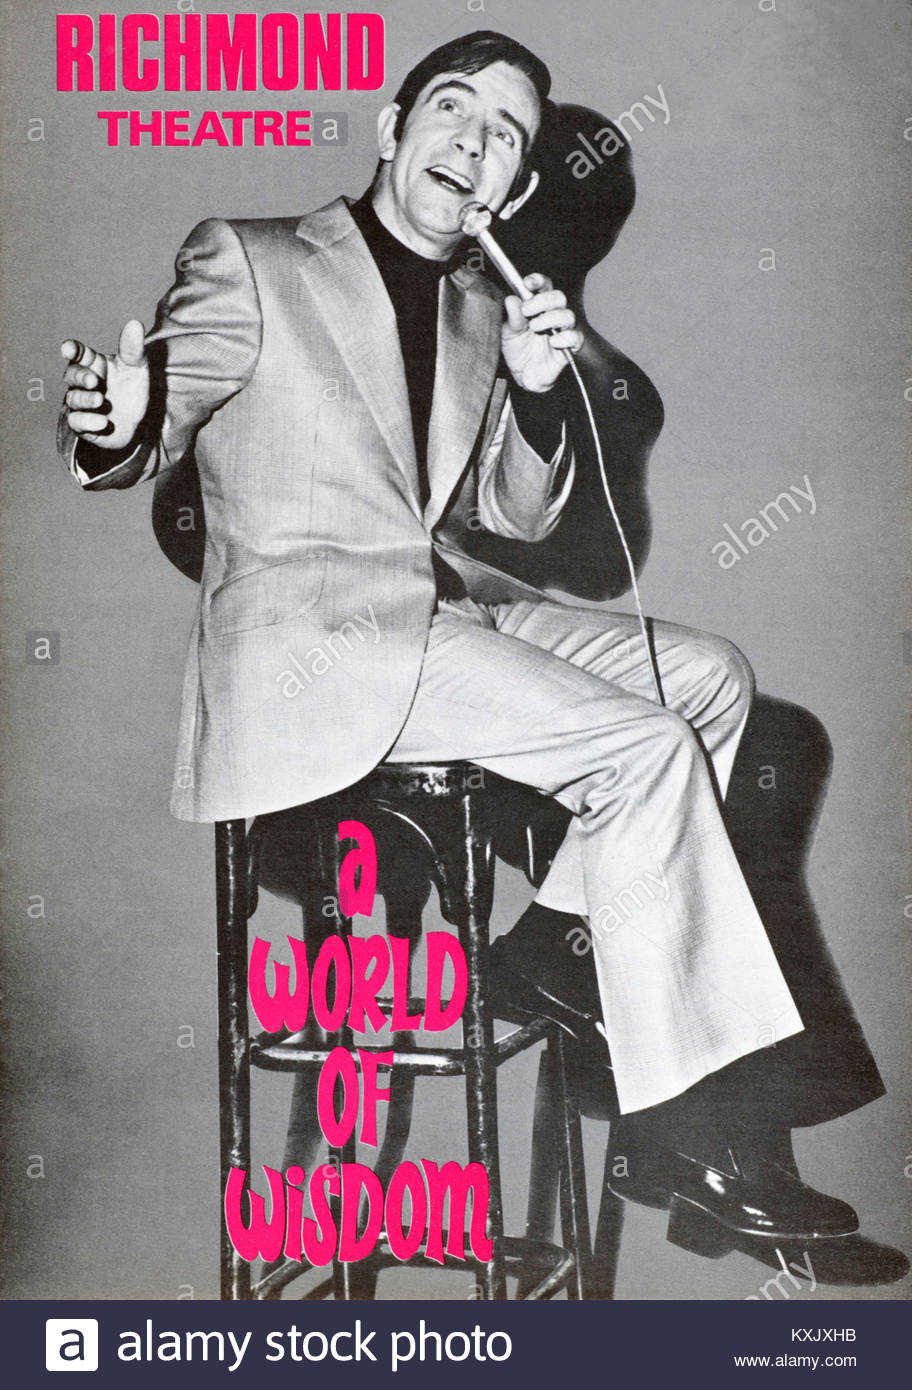 Programme for the Norman Wisdom show at the Richmond theatre 1979 - Stock Image